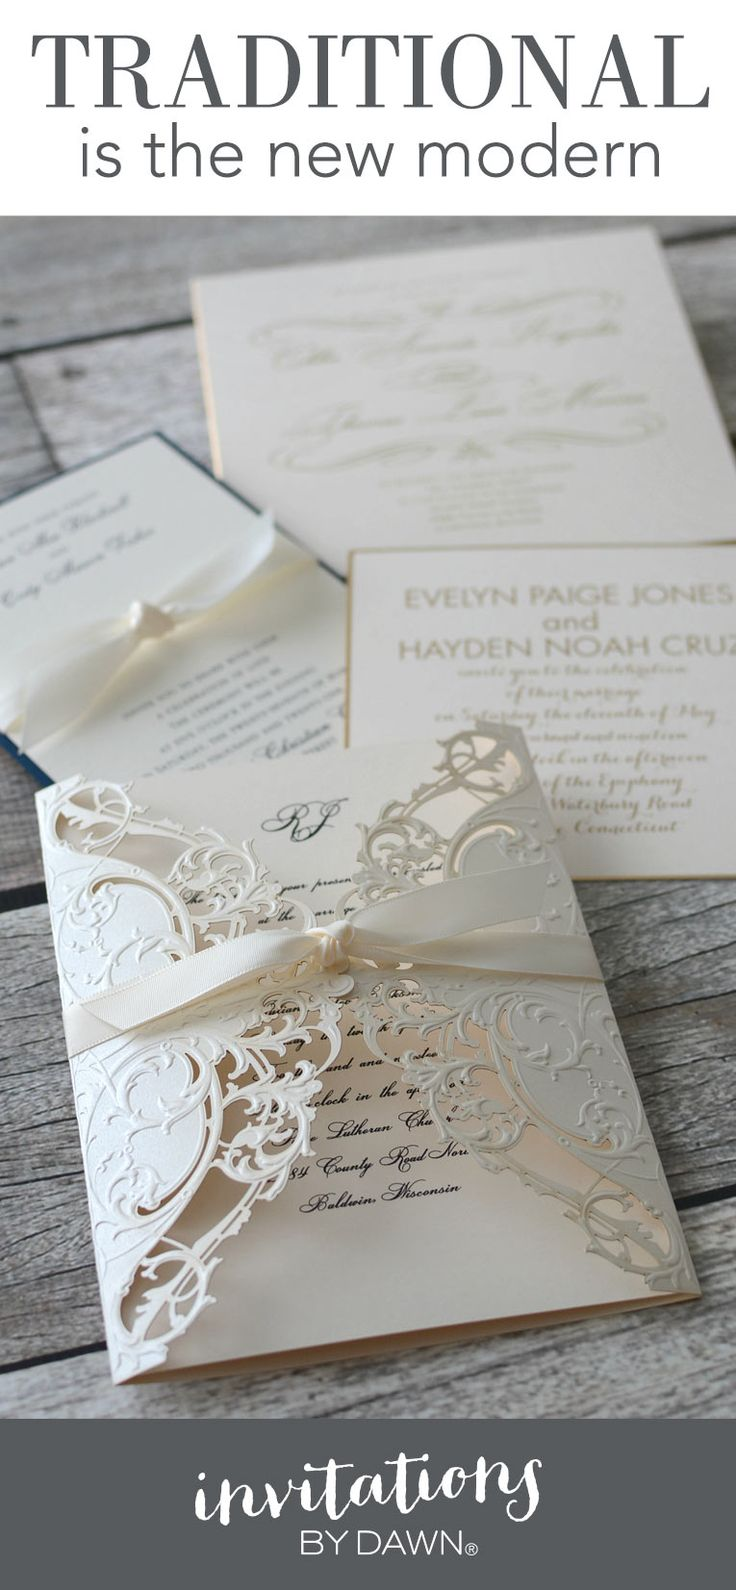 Best 25 Traditional wedding invitations ideas – Wedding Invitations Traditional Designs